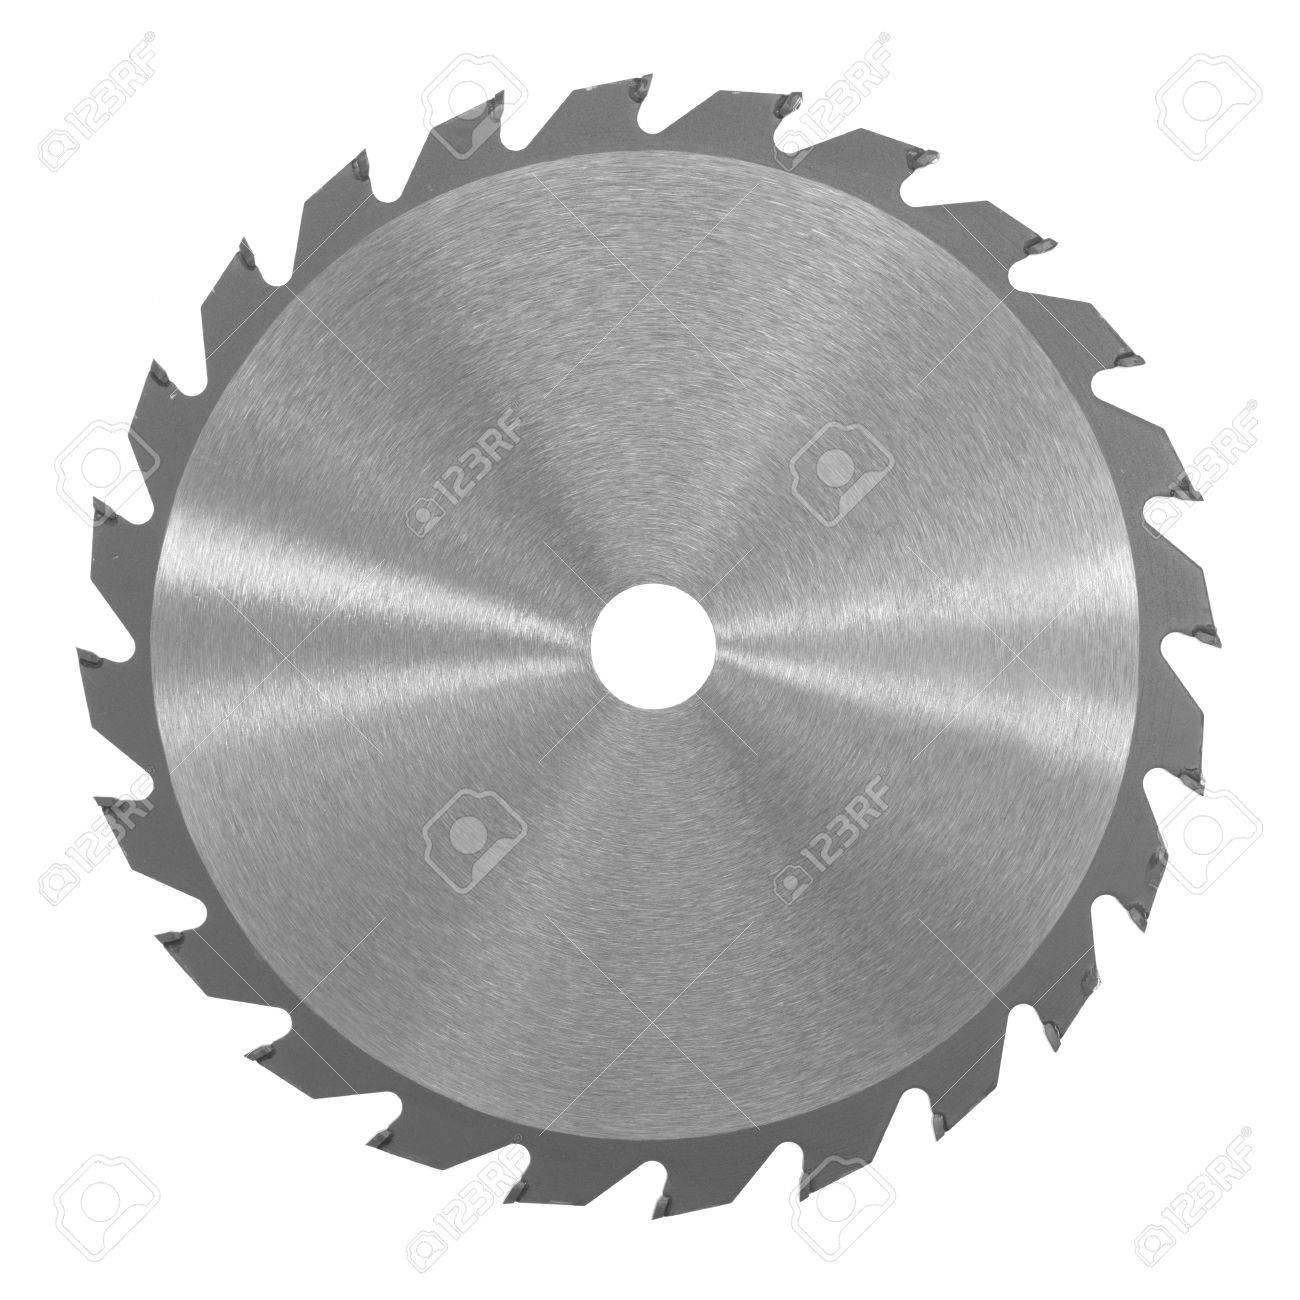 A saw blade isolated against a white background Stock Photo - 22640987